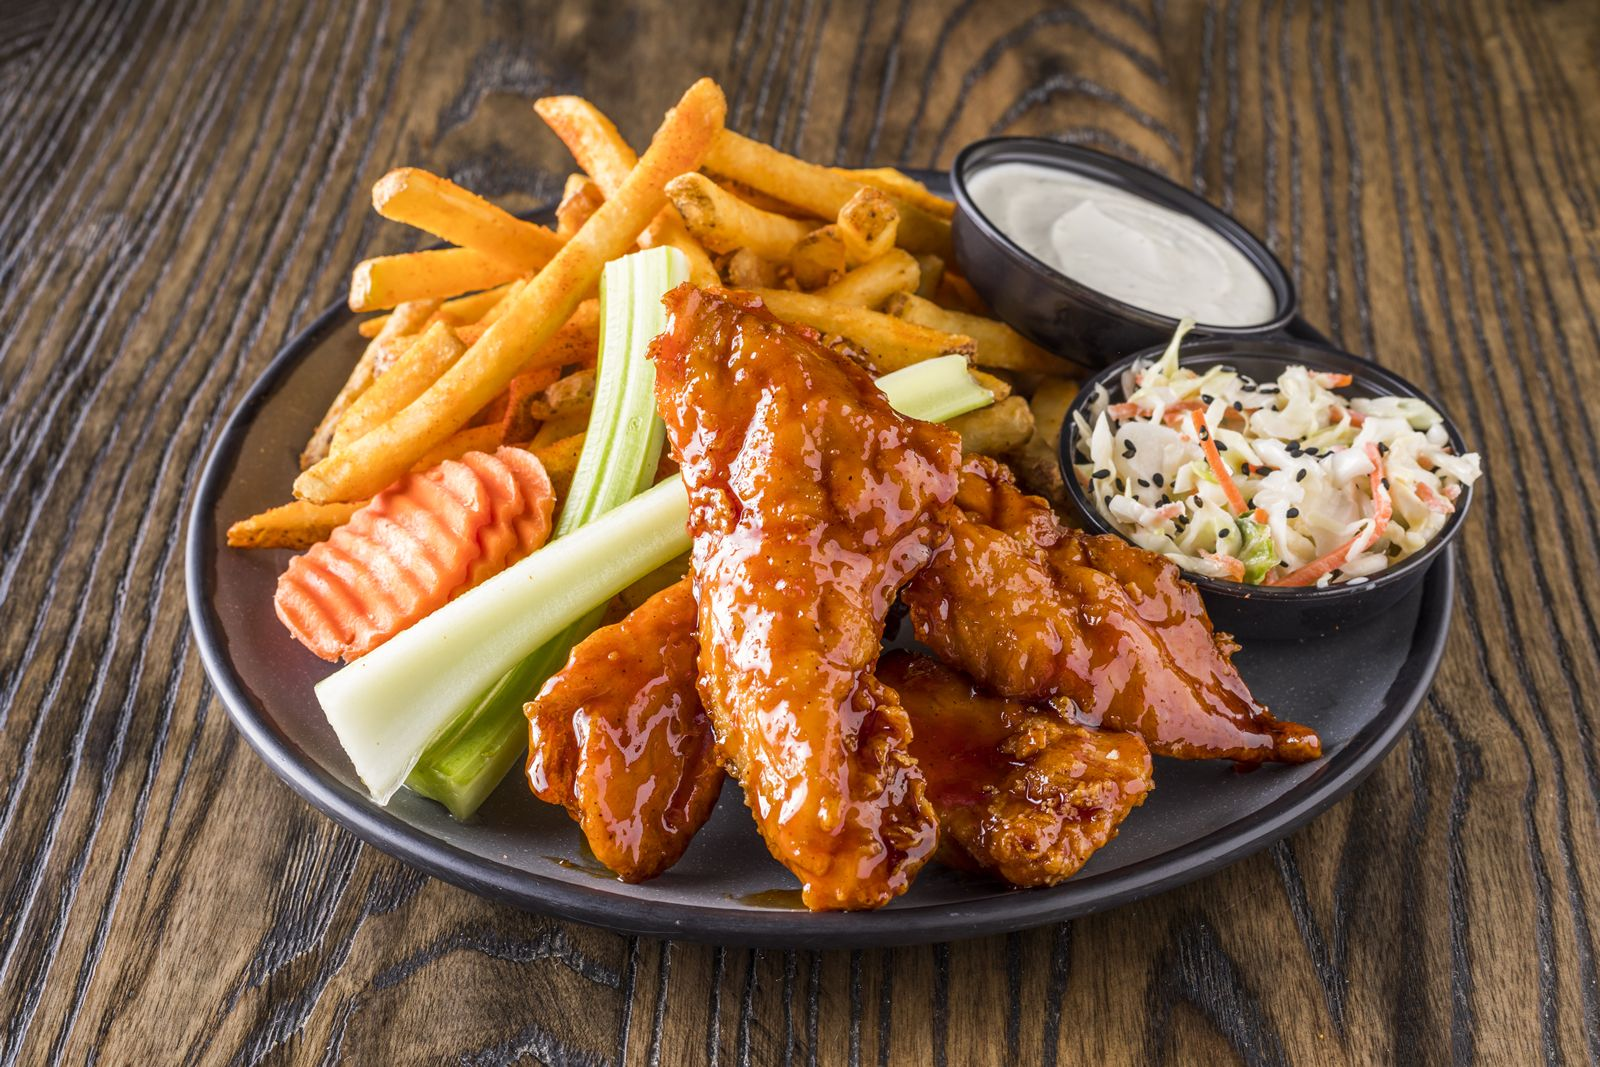 Wingers Prepares to Scale New Heights Through Significant Franchise Growth